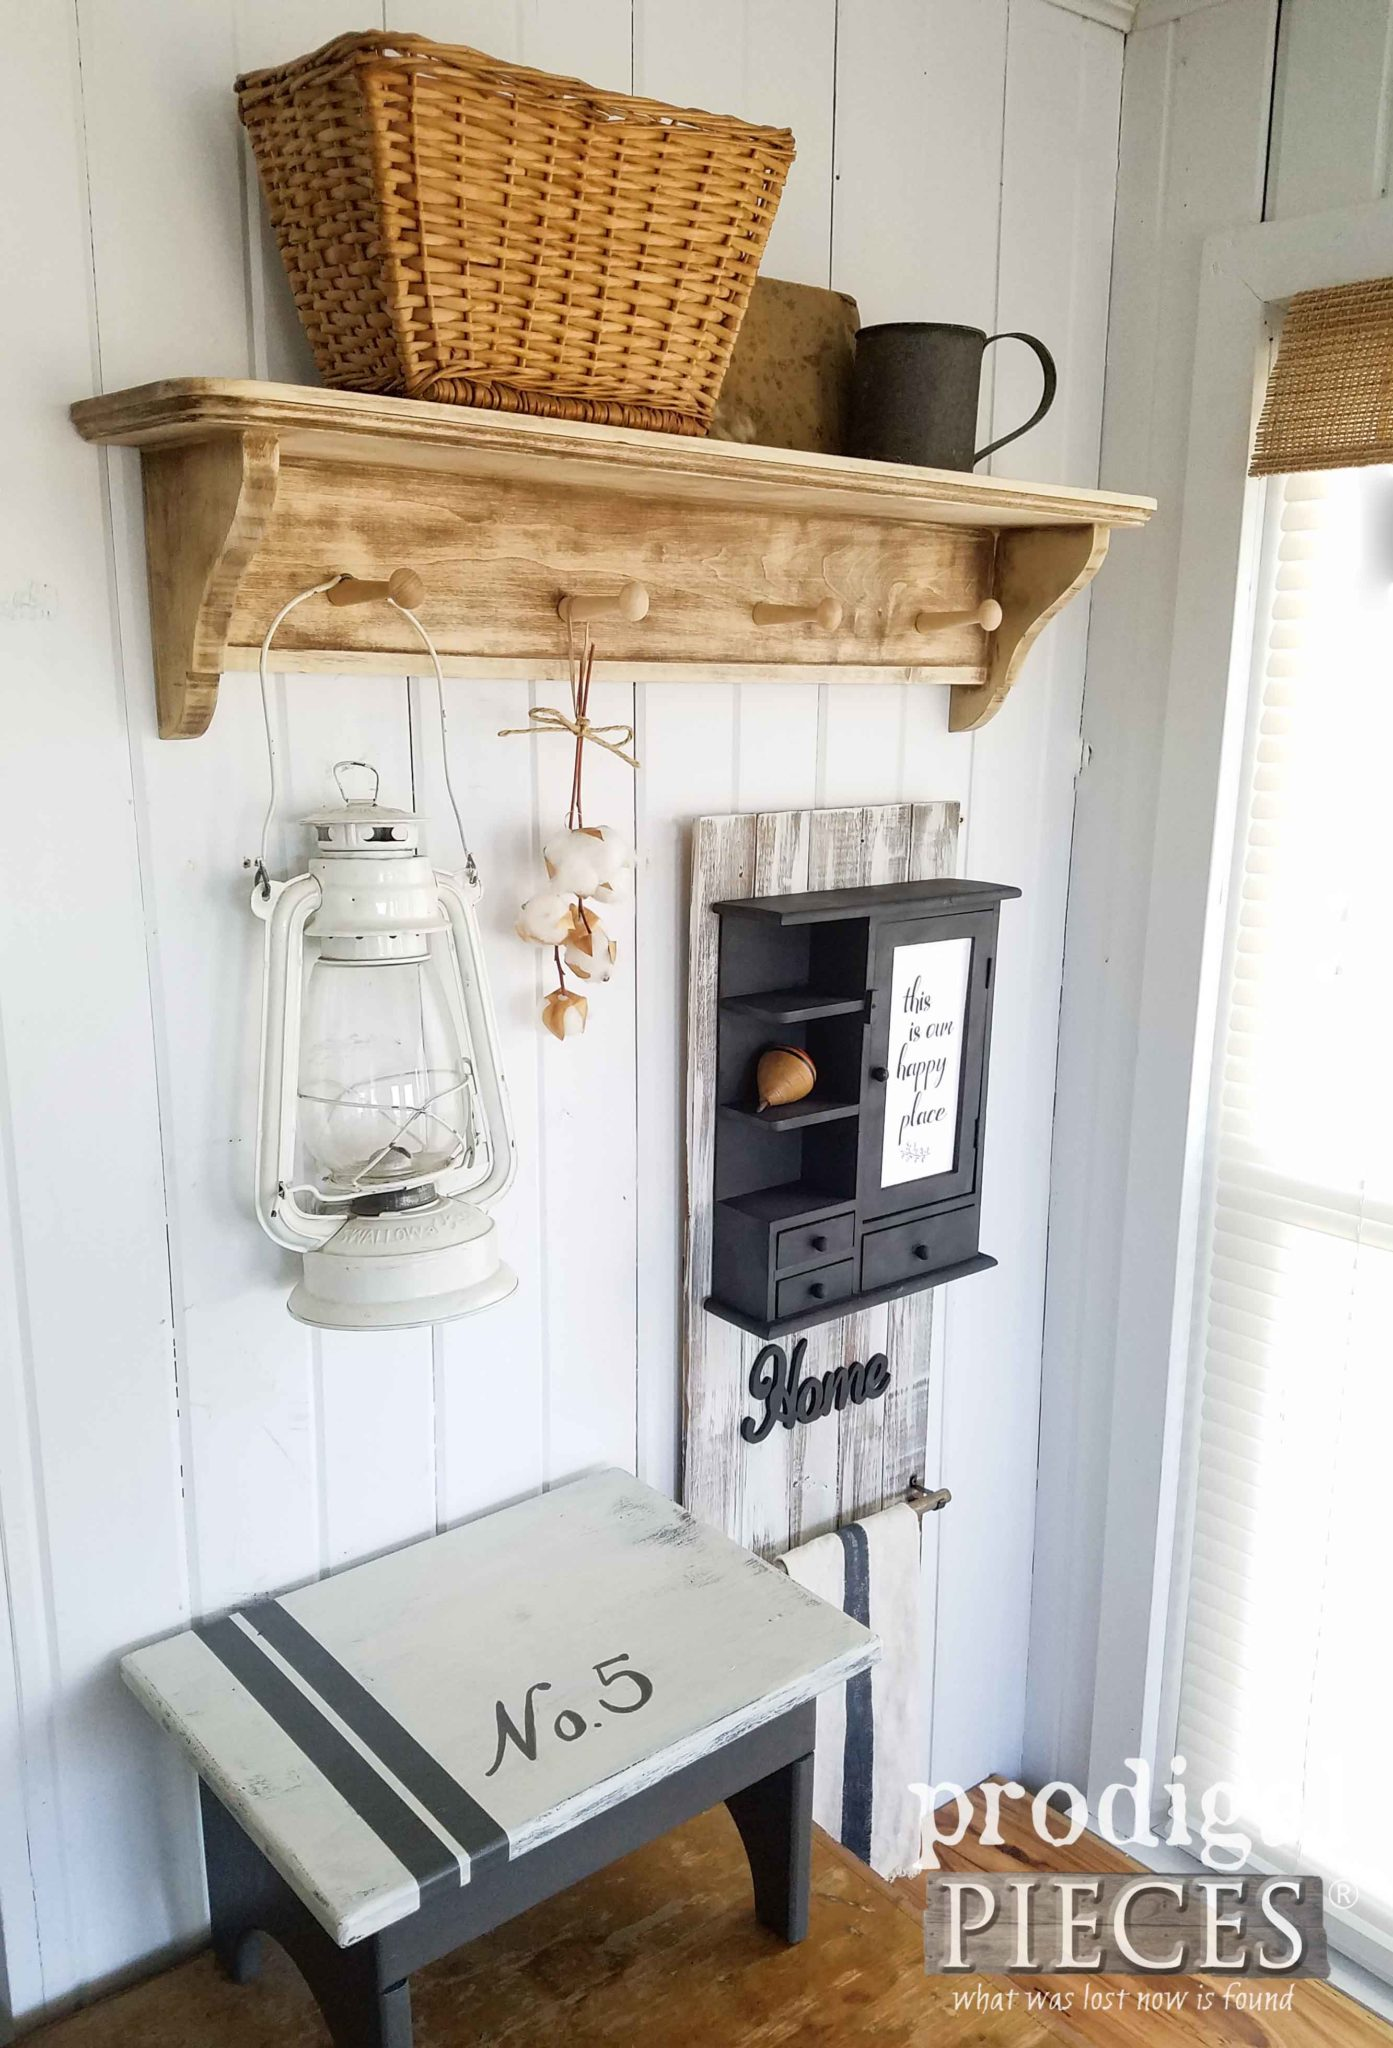 This mud room area with a rustic shelf and hanging lantern is charming.